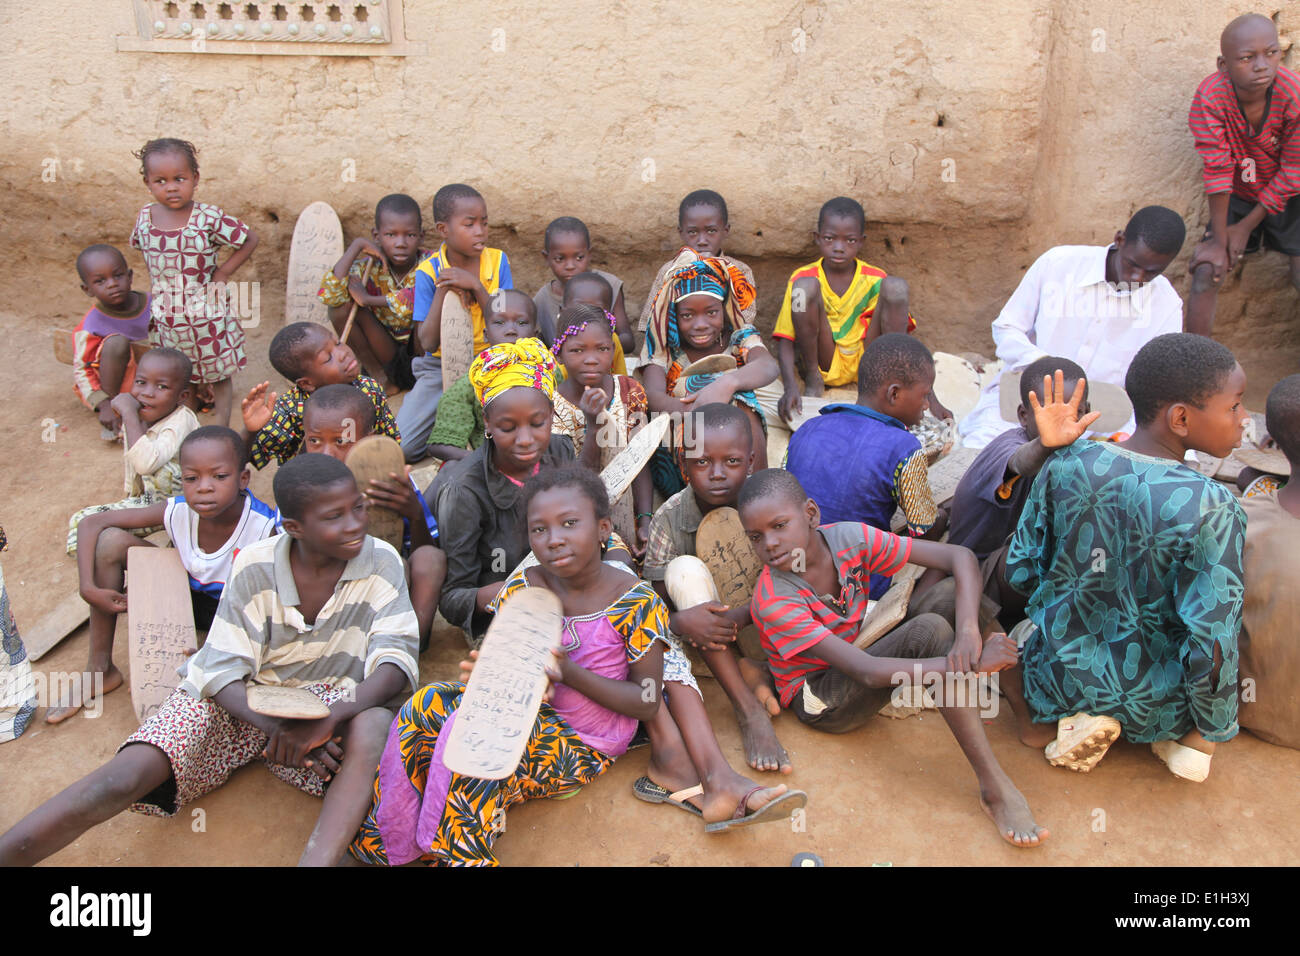 Schoolchildren in Africa - Stock Image